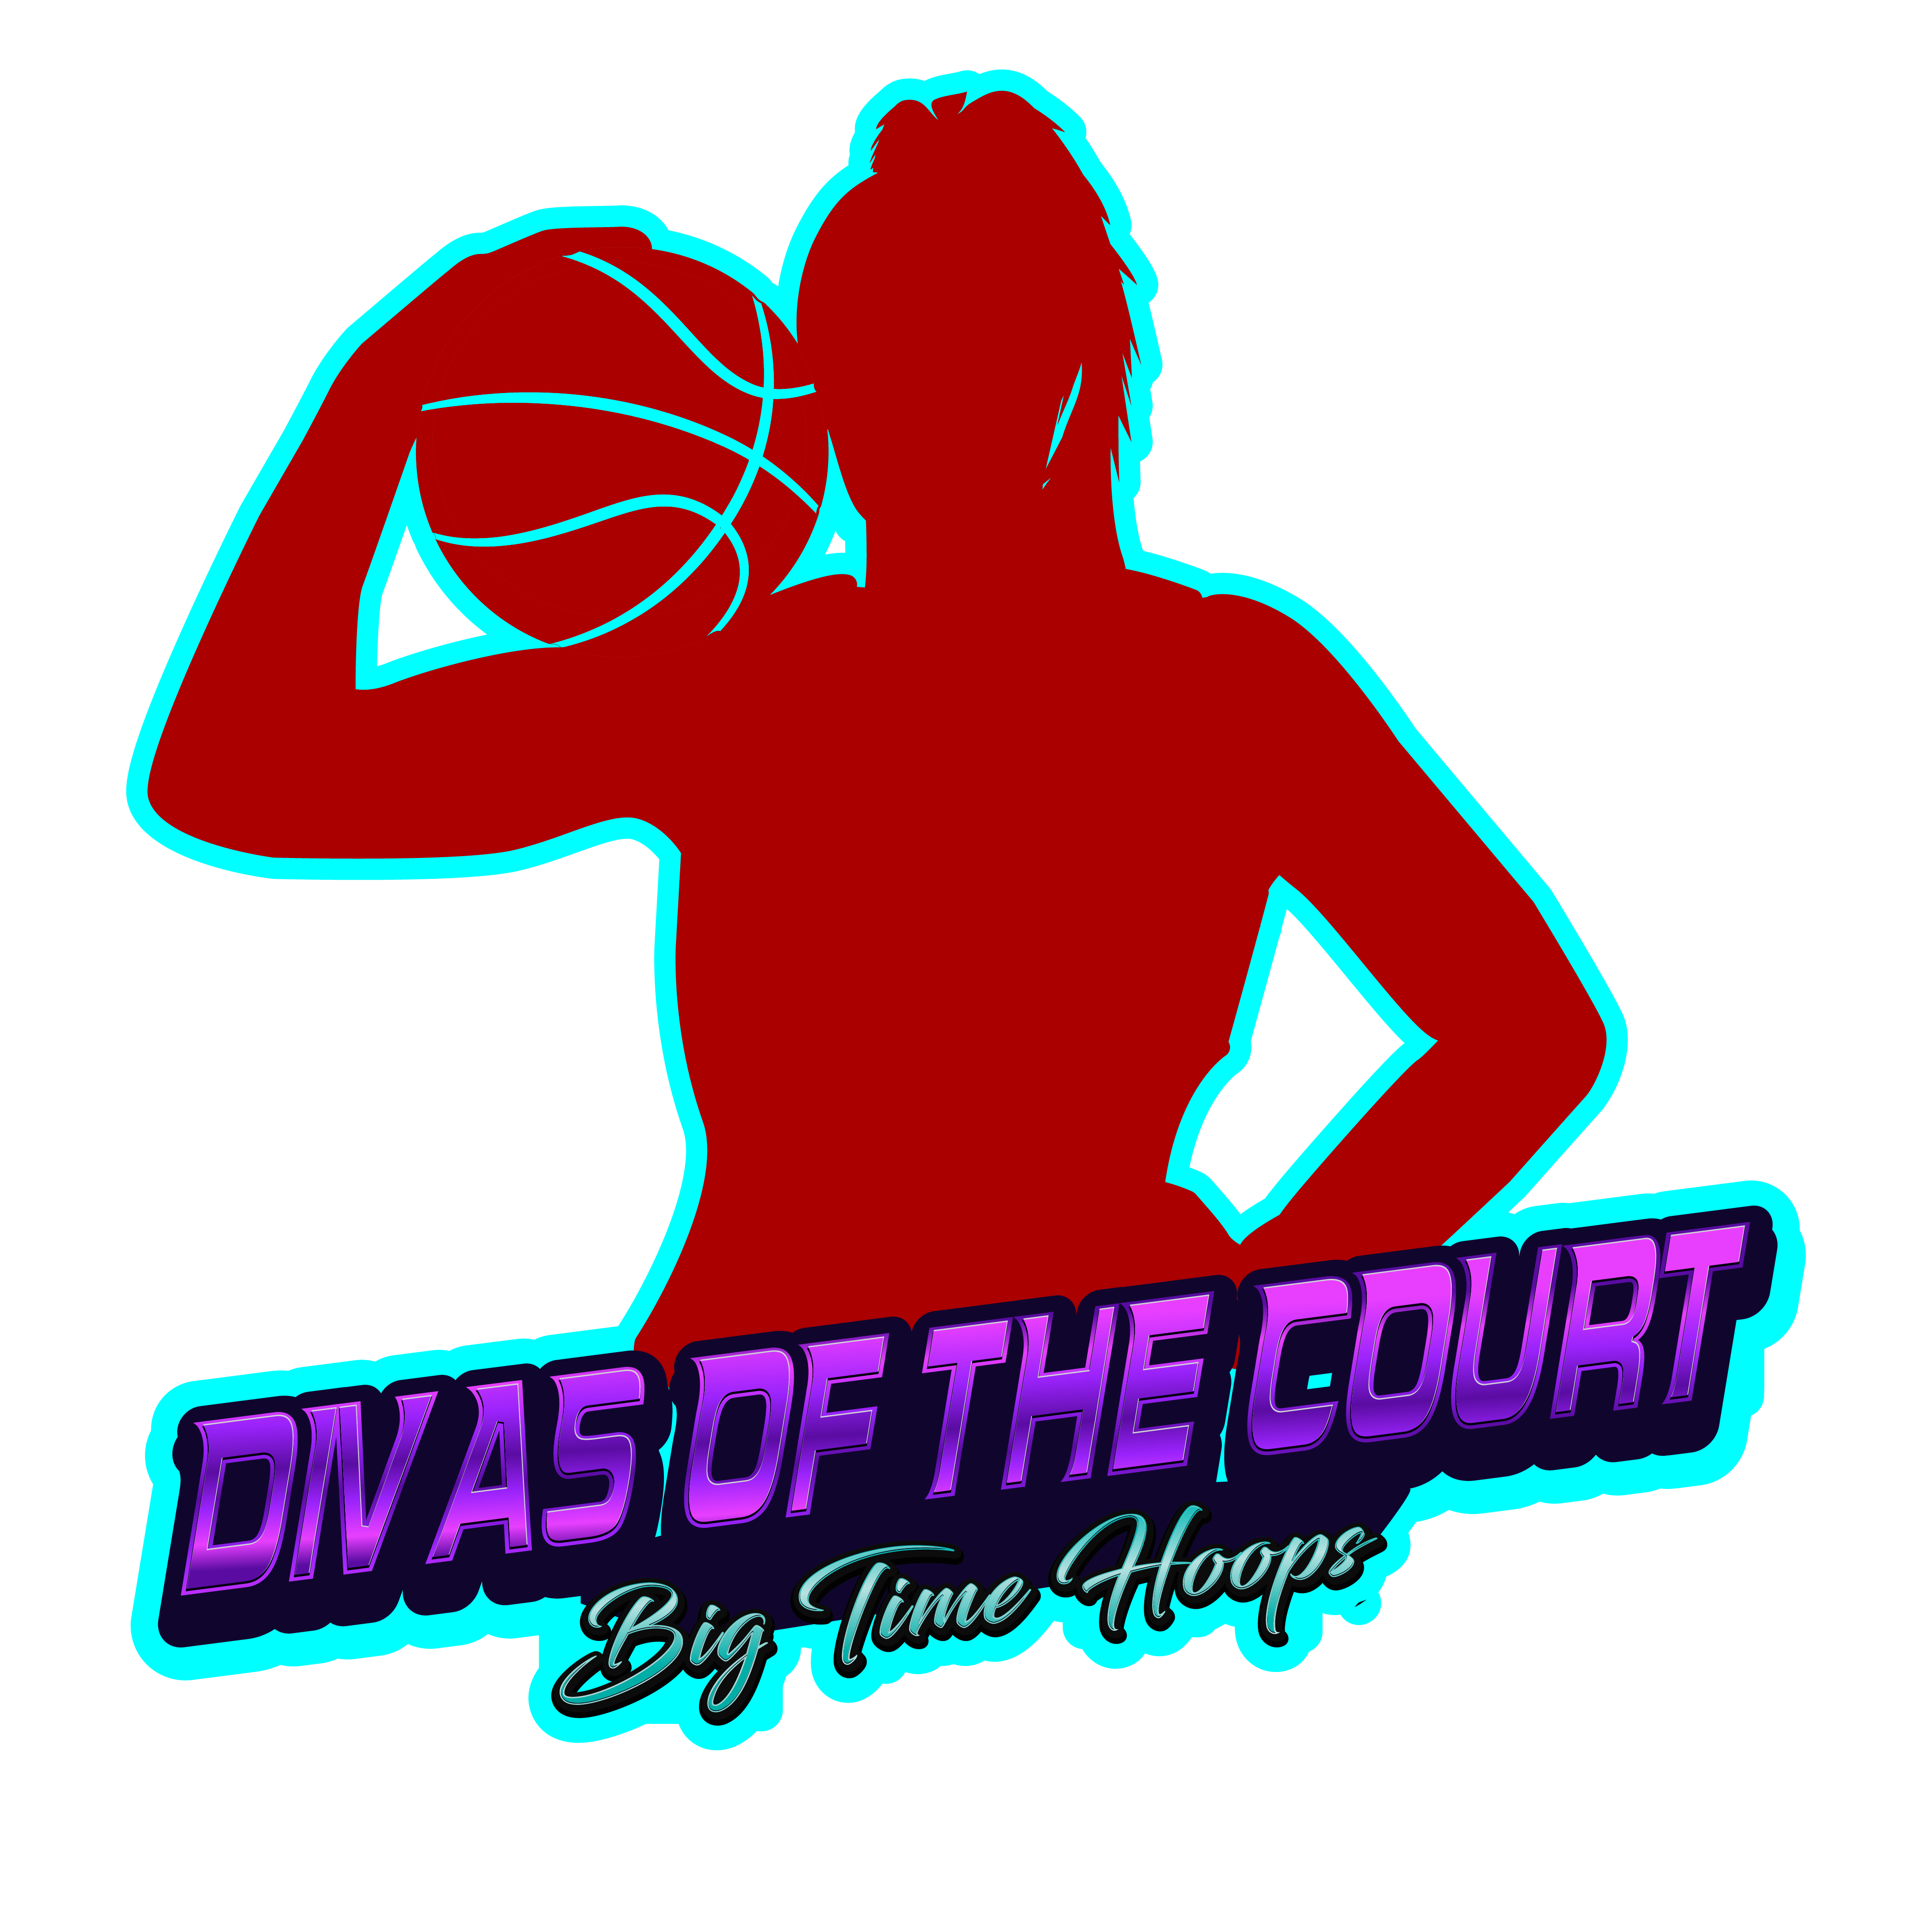 DIVAS OF THE COURT – MARYLAND